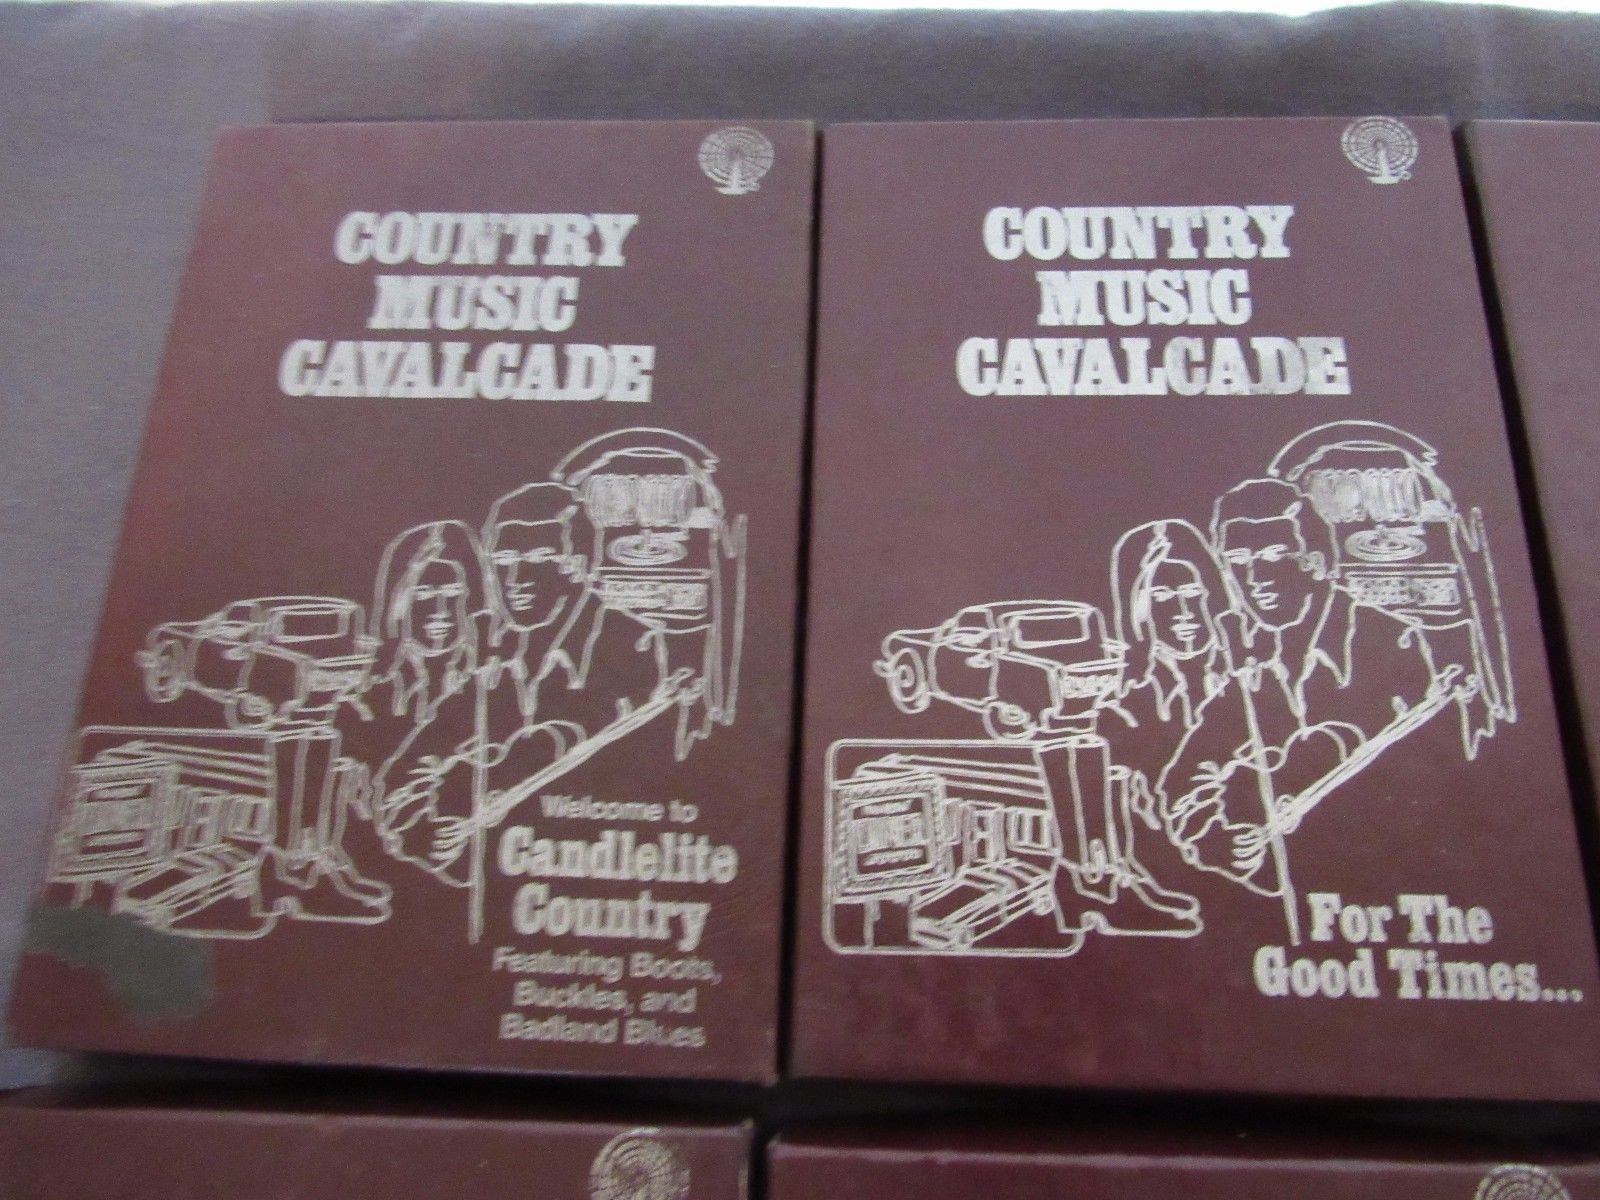 8-Track Lot Country Music Cavalcade 18 tapes